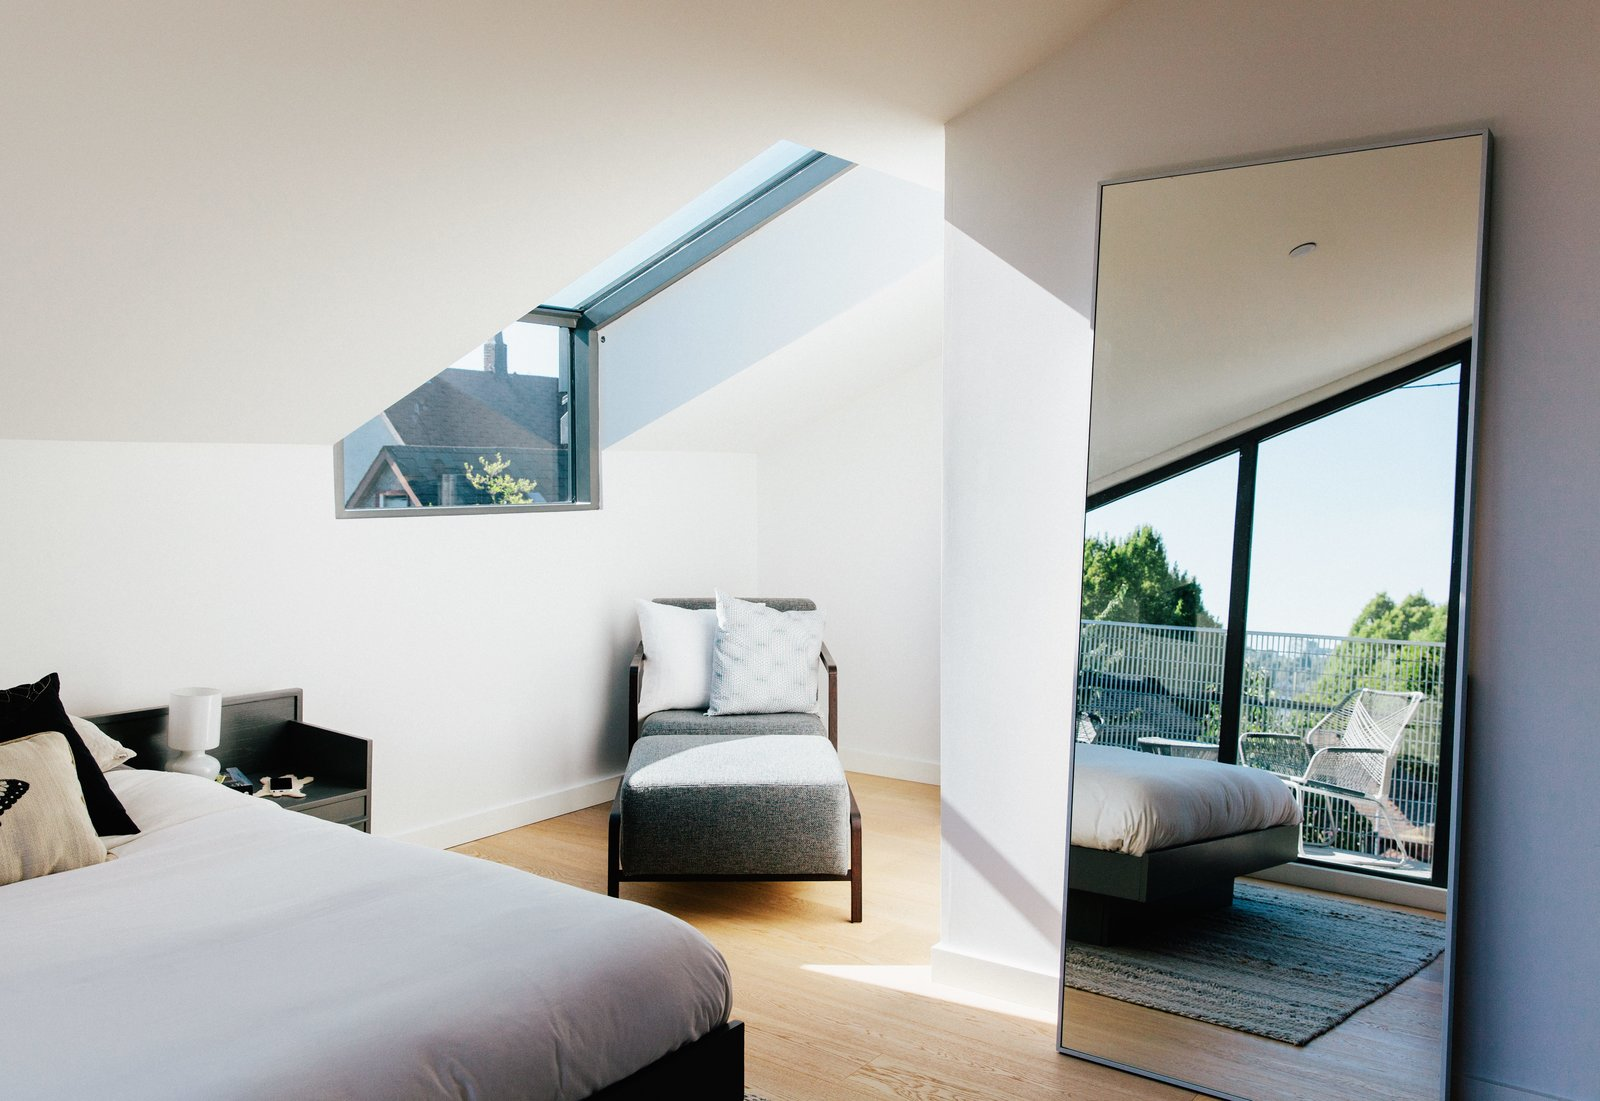 Bedroom, Bed, and Light Hardwood Floor Dick Hellofs and Karli Gillespie occupy a new house at the back of the site. Light streams into their bedroom through a Spectrum Skyworks skylight, shining on an armchair and ottoman from Calligaris, while an IKEA mirror reflects a refurbished 1960s bed.  Best Photos from As Housing Costs Soar, Two Homes Multiply to Seven